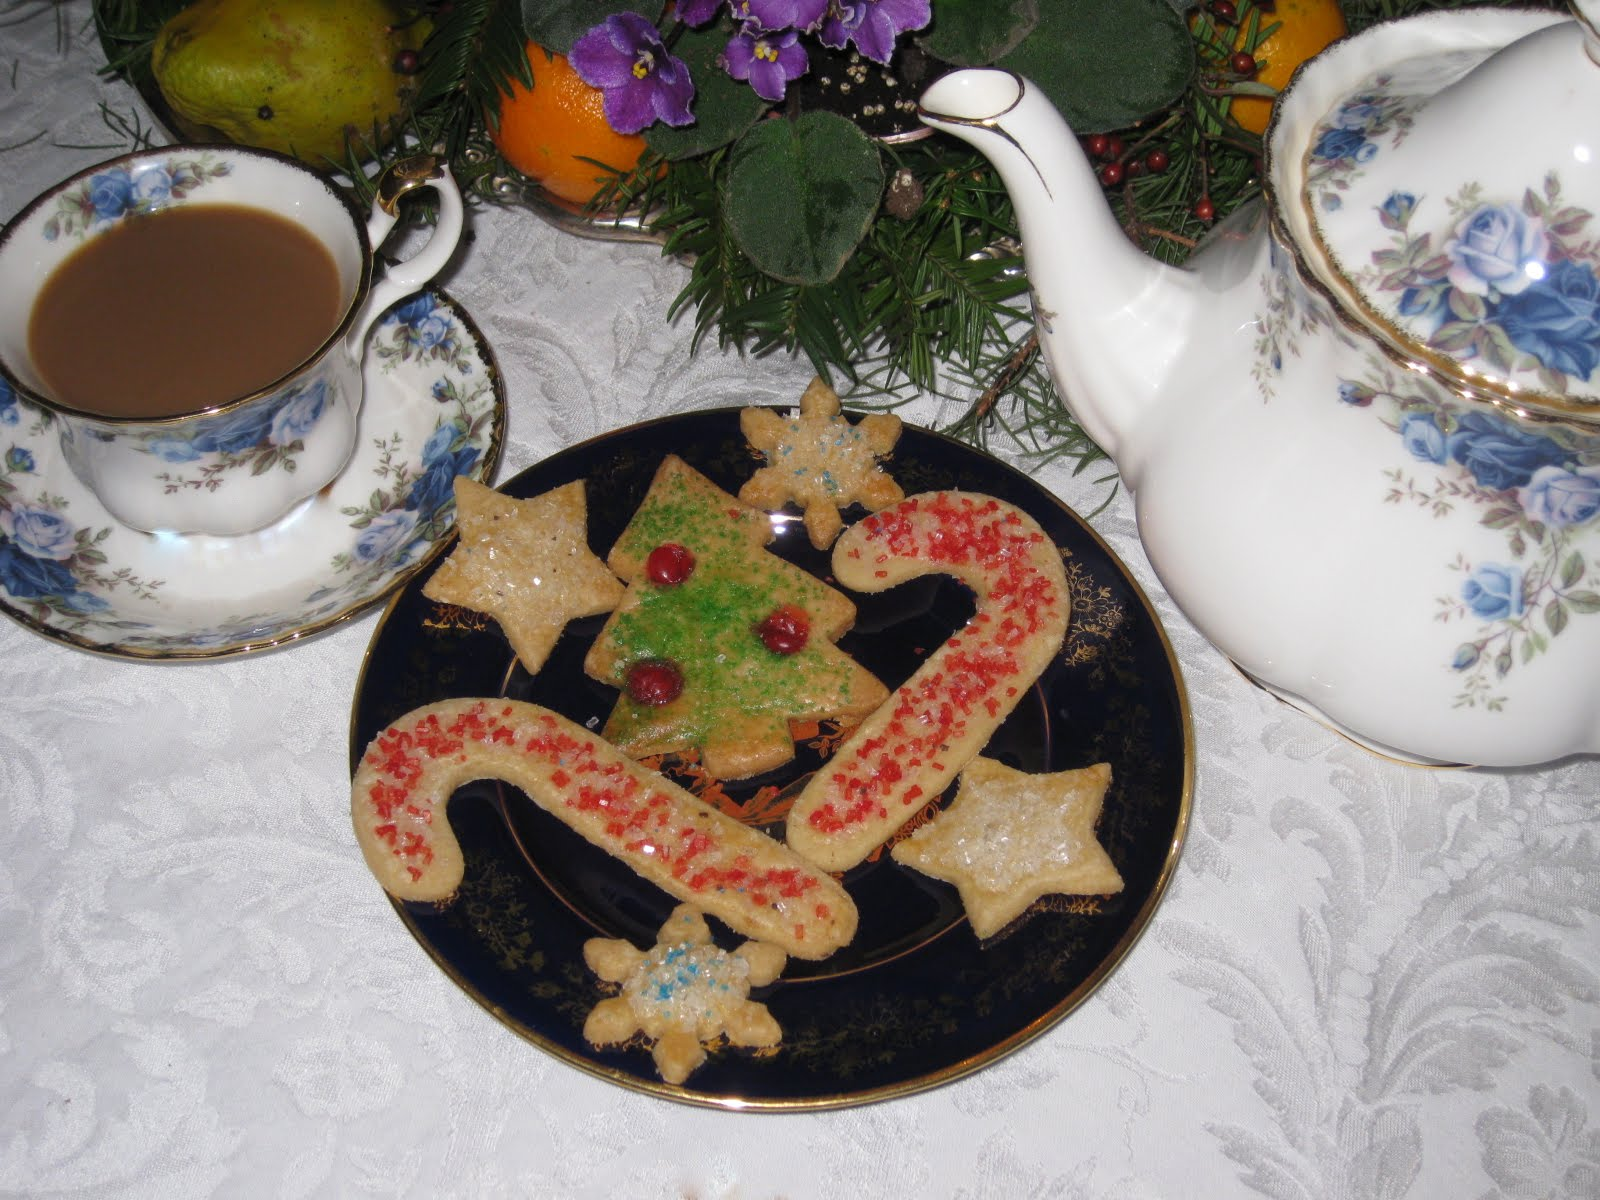 Heirloom Christmas Recipe: Mildred Gleason's Brown Sugar Cookies